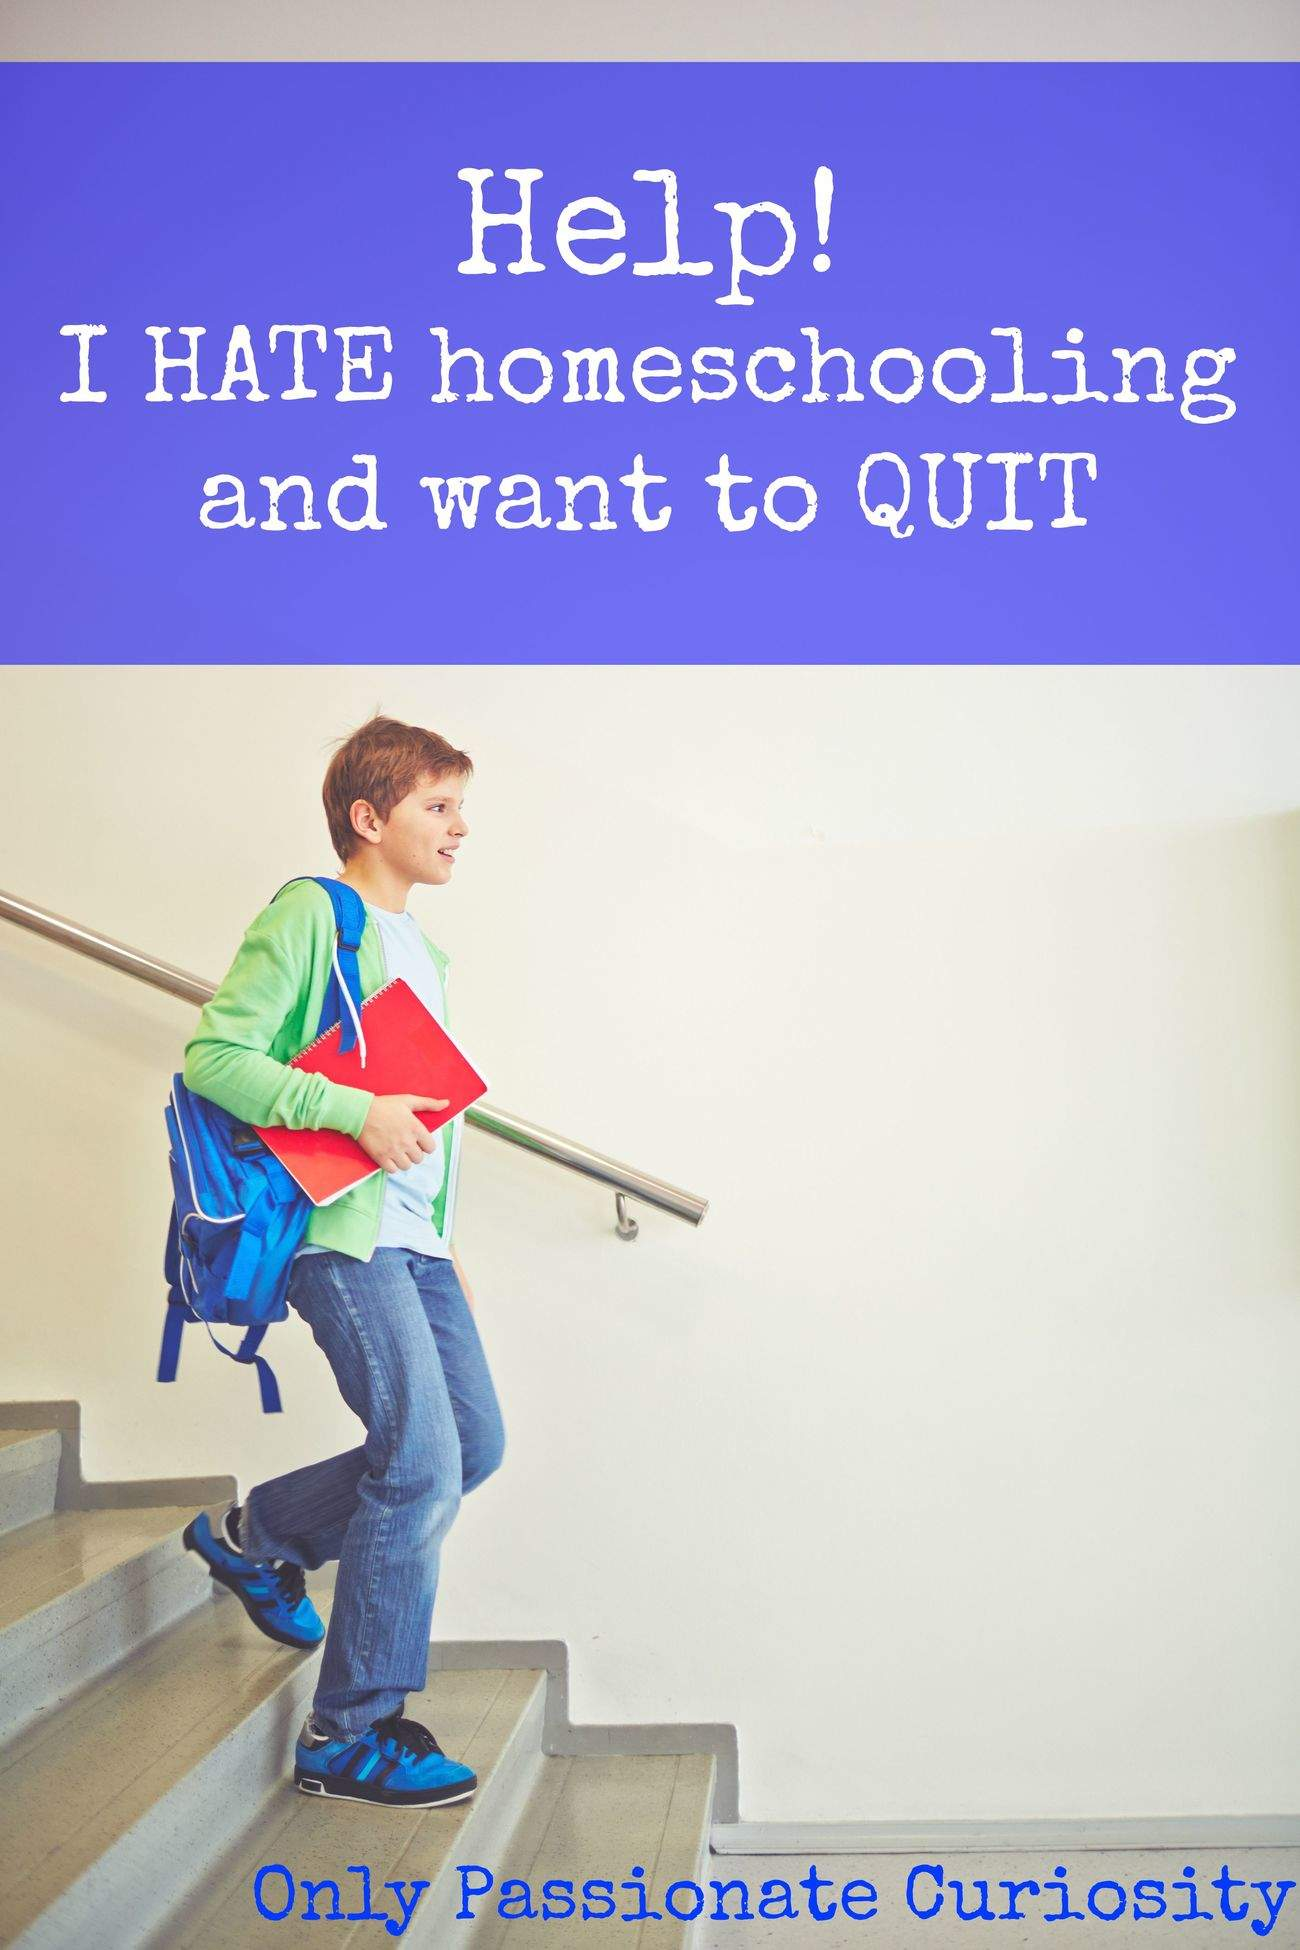 So you REALLY want to quit homeschooling